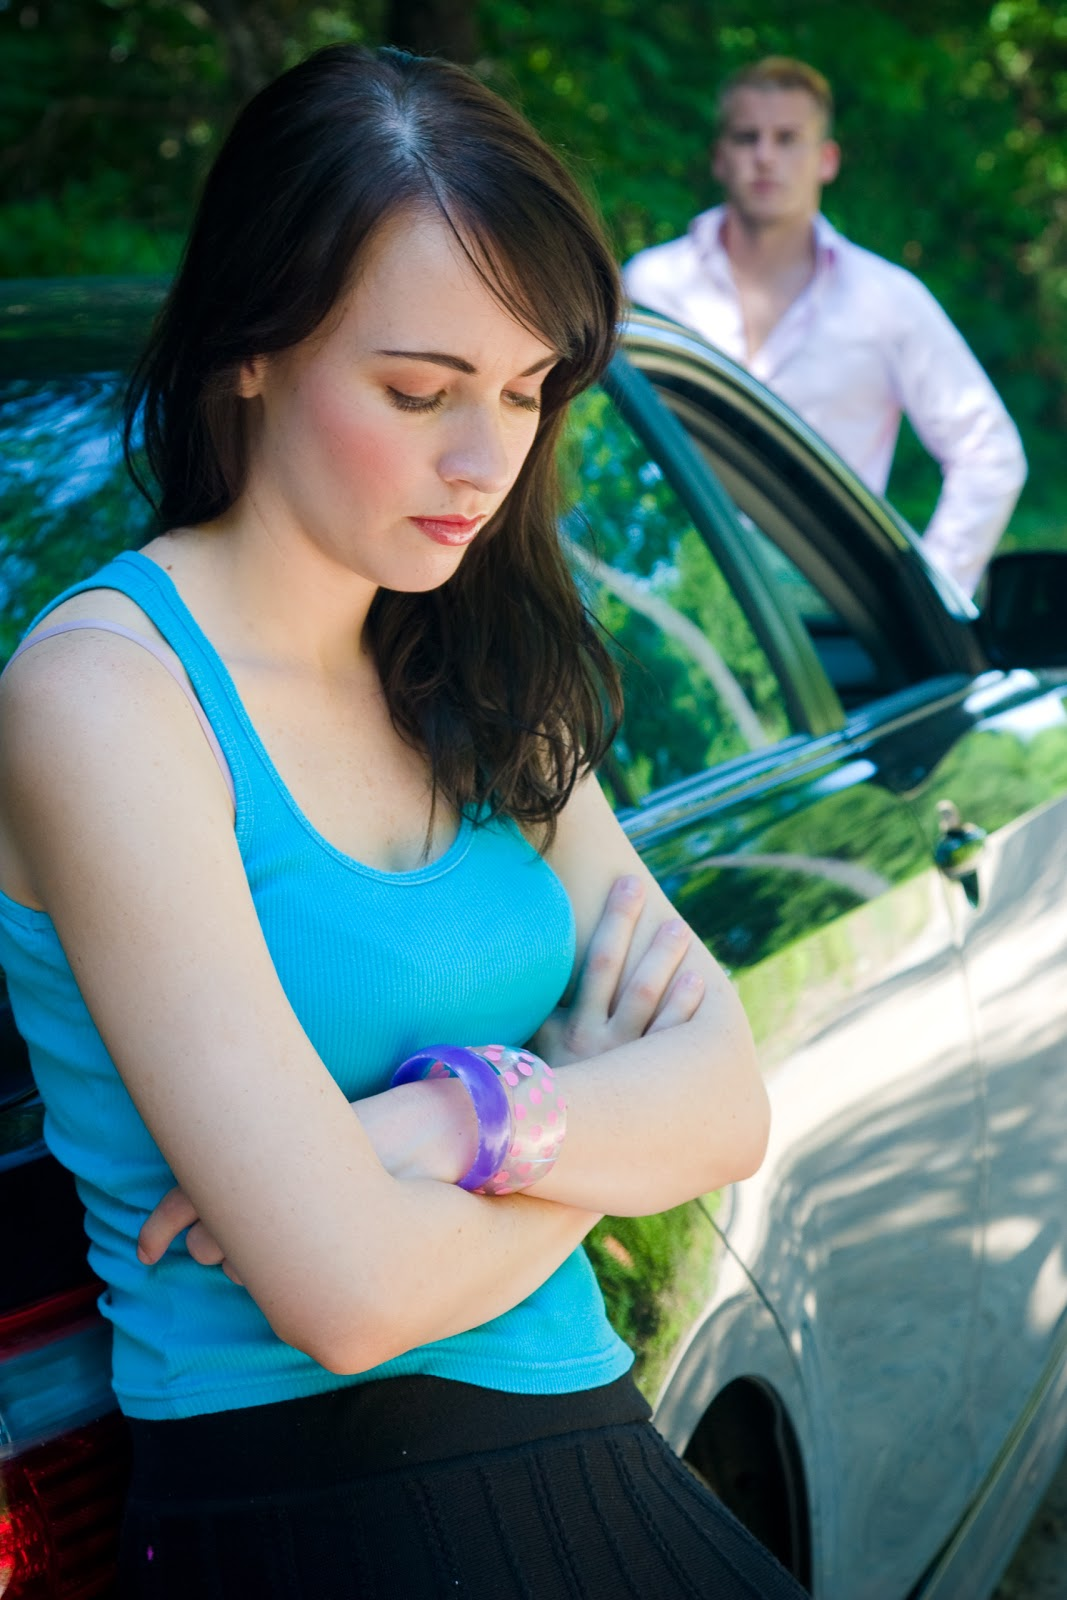 Infidelity & Affairs: Facts, Myths and What Works